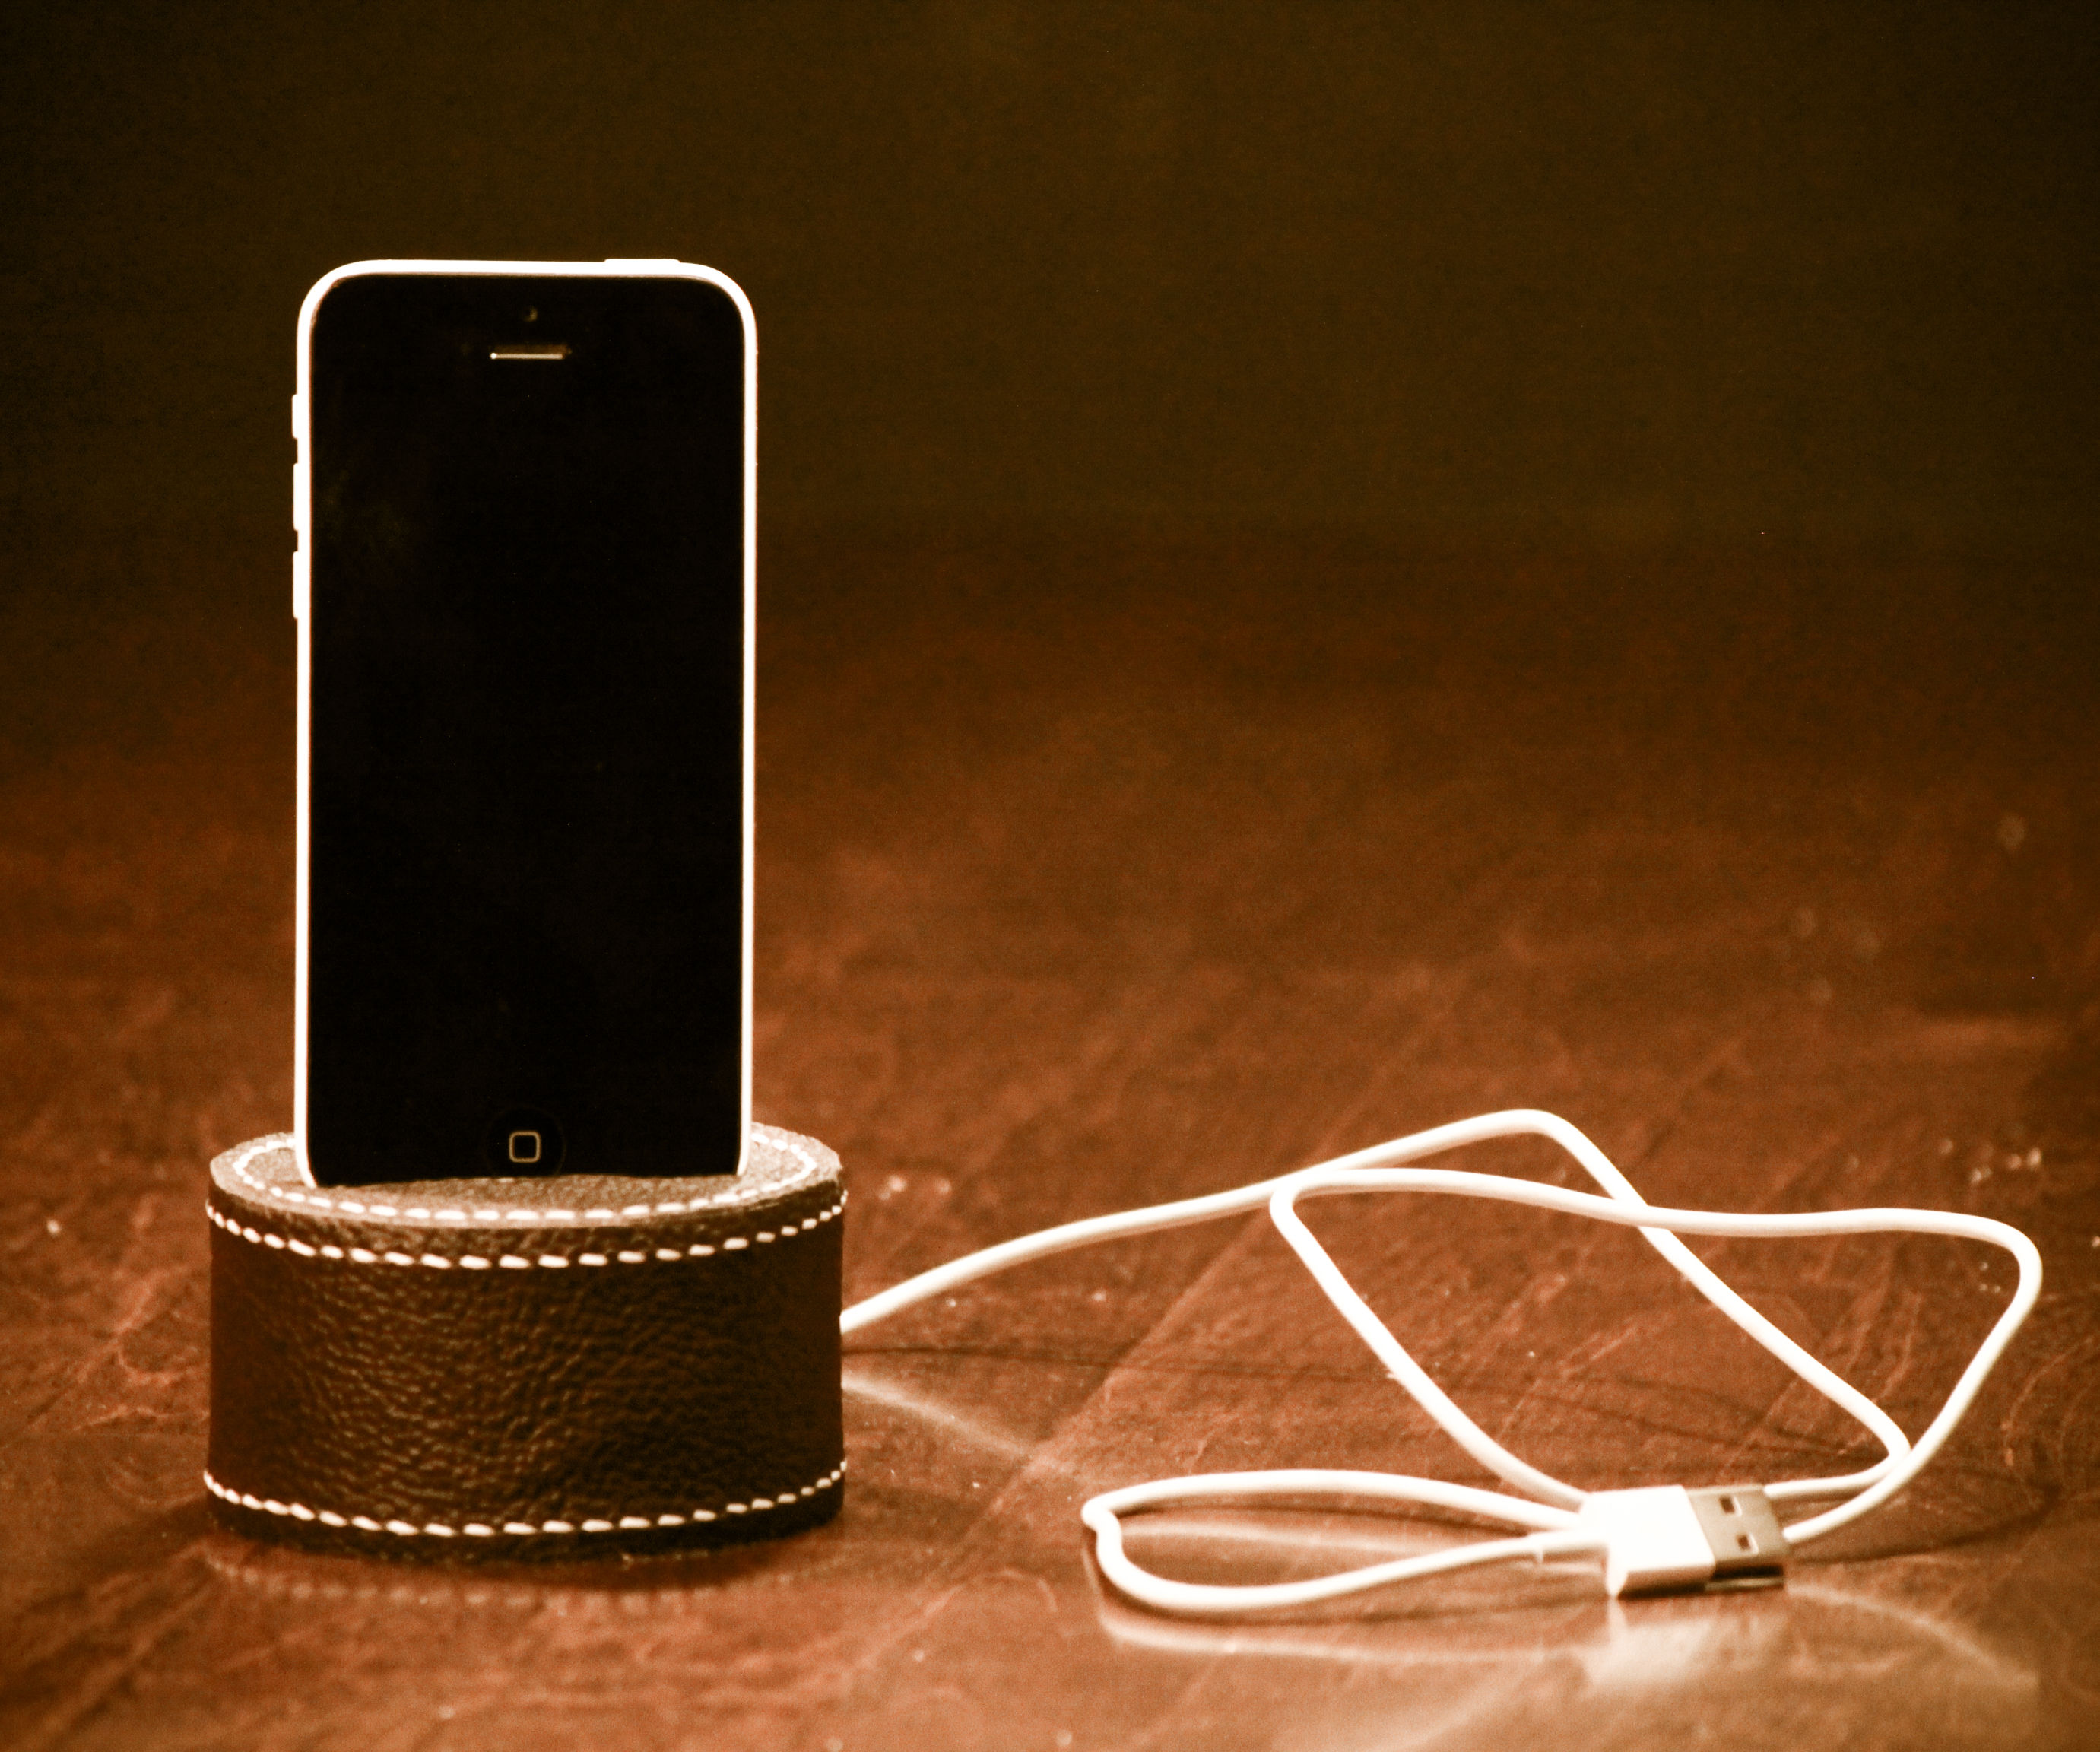 Phone dock - hot glue and leather